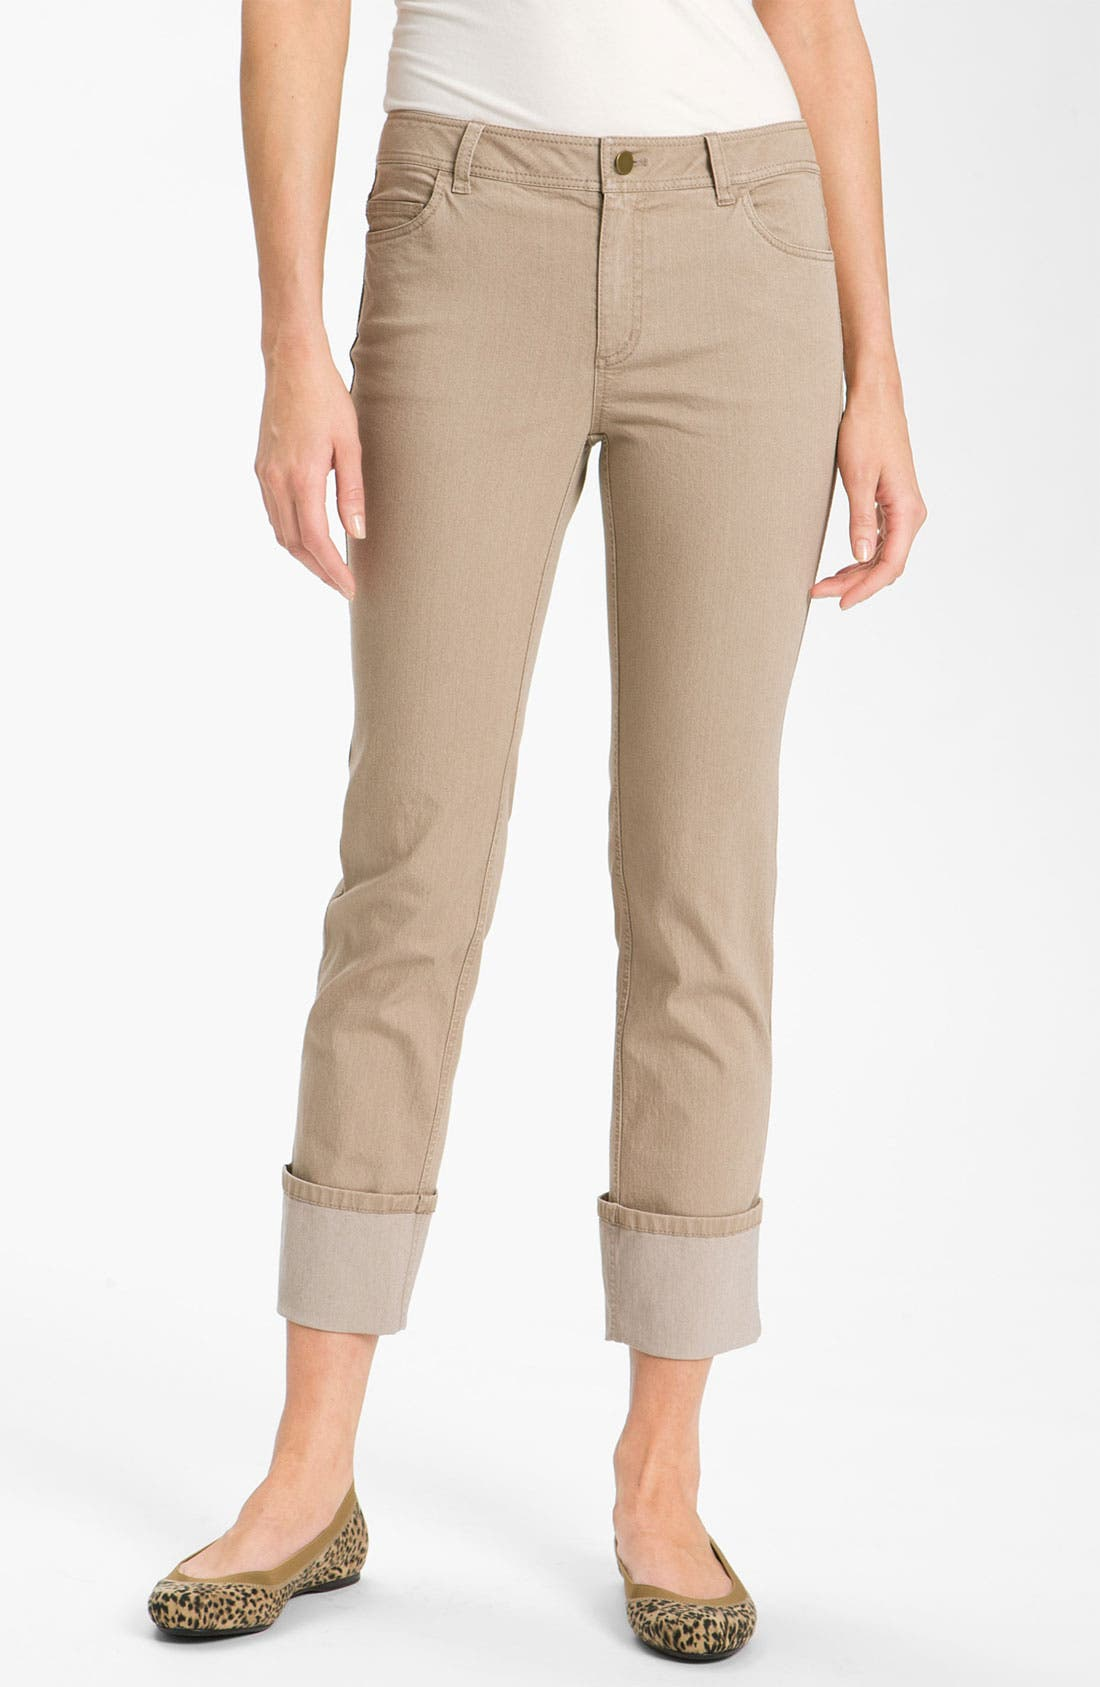 Alternate Image 1 Selected - Lafayette 148 New York Cuff Crop Jeans